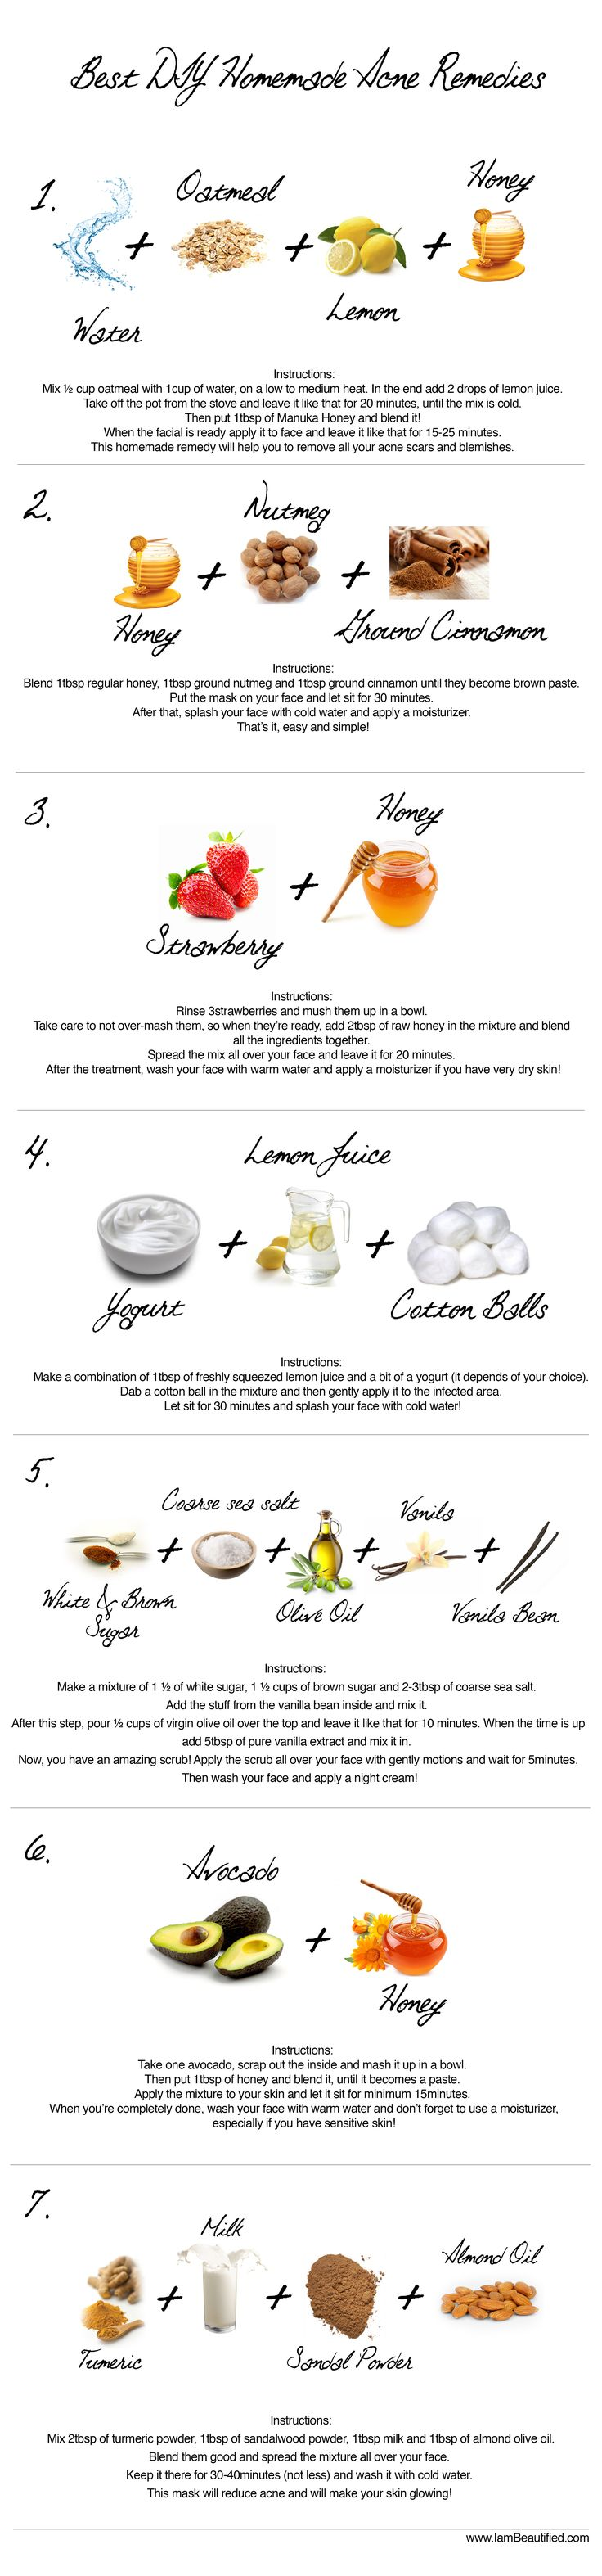 Best DIY Homemade Acne Remedies.. Not sure about putting oils on acne, only one I'm comfortable with is tea tree